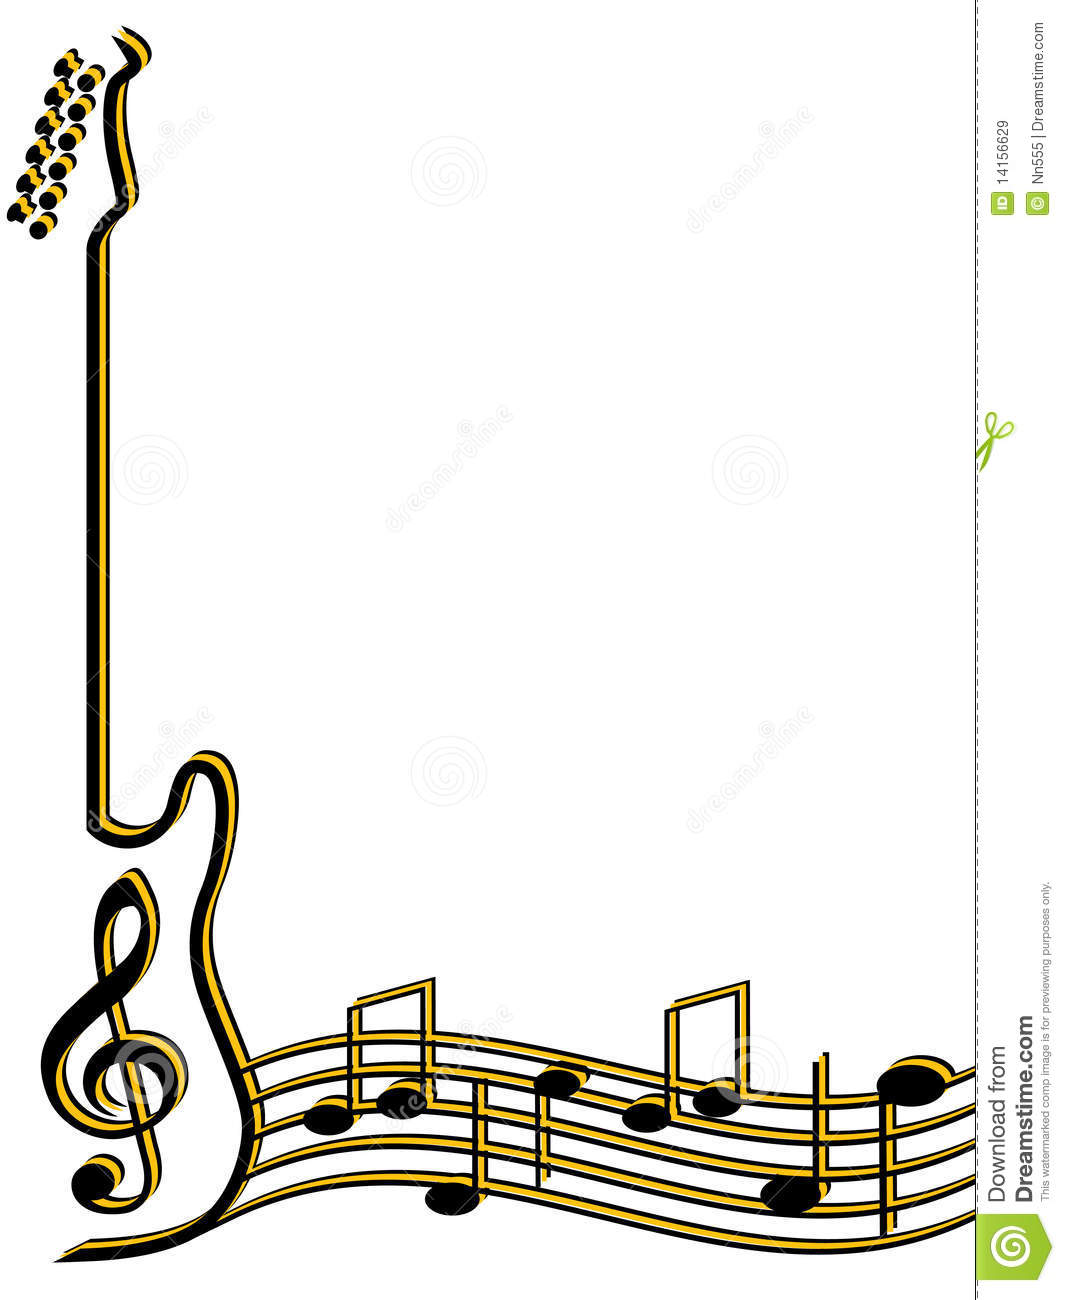 Background clipart guitar #8